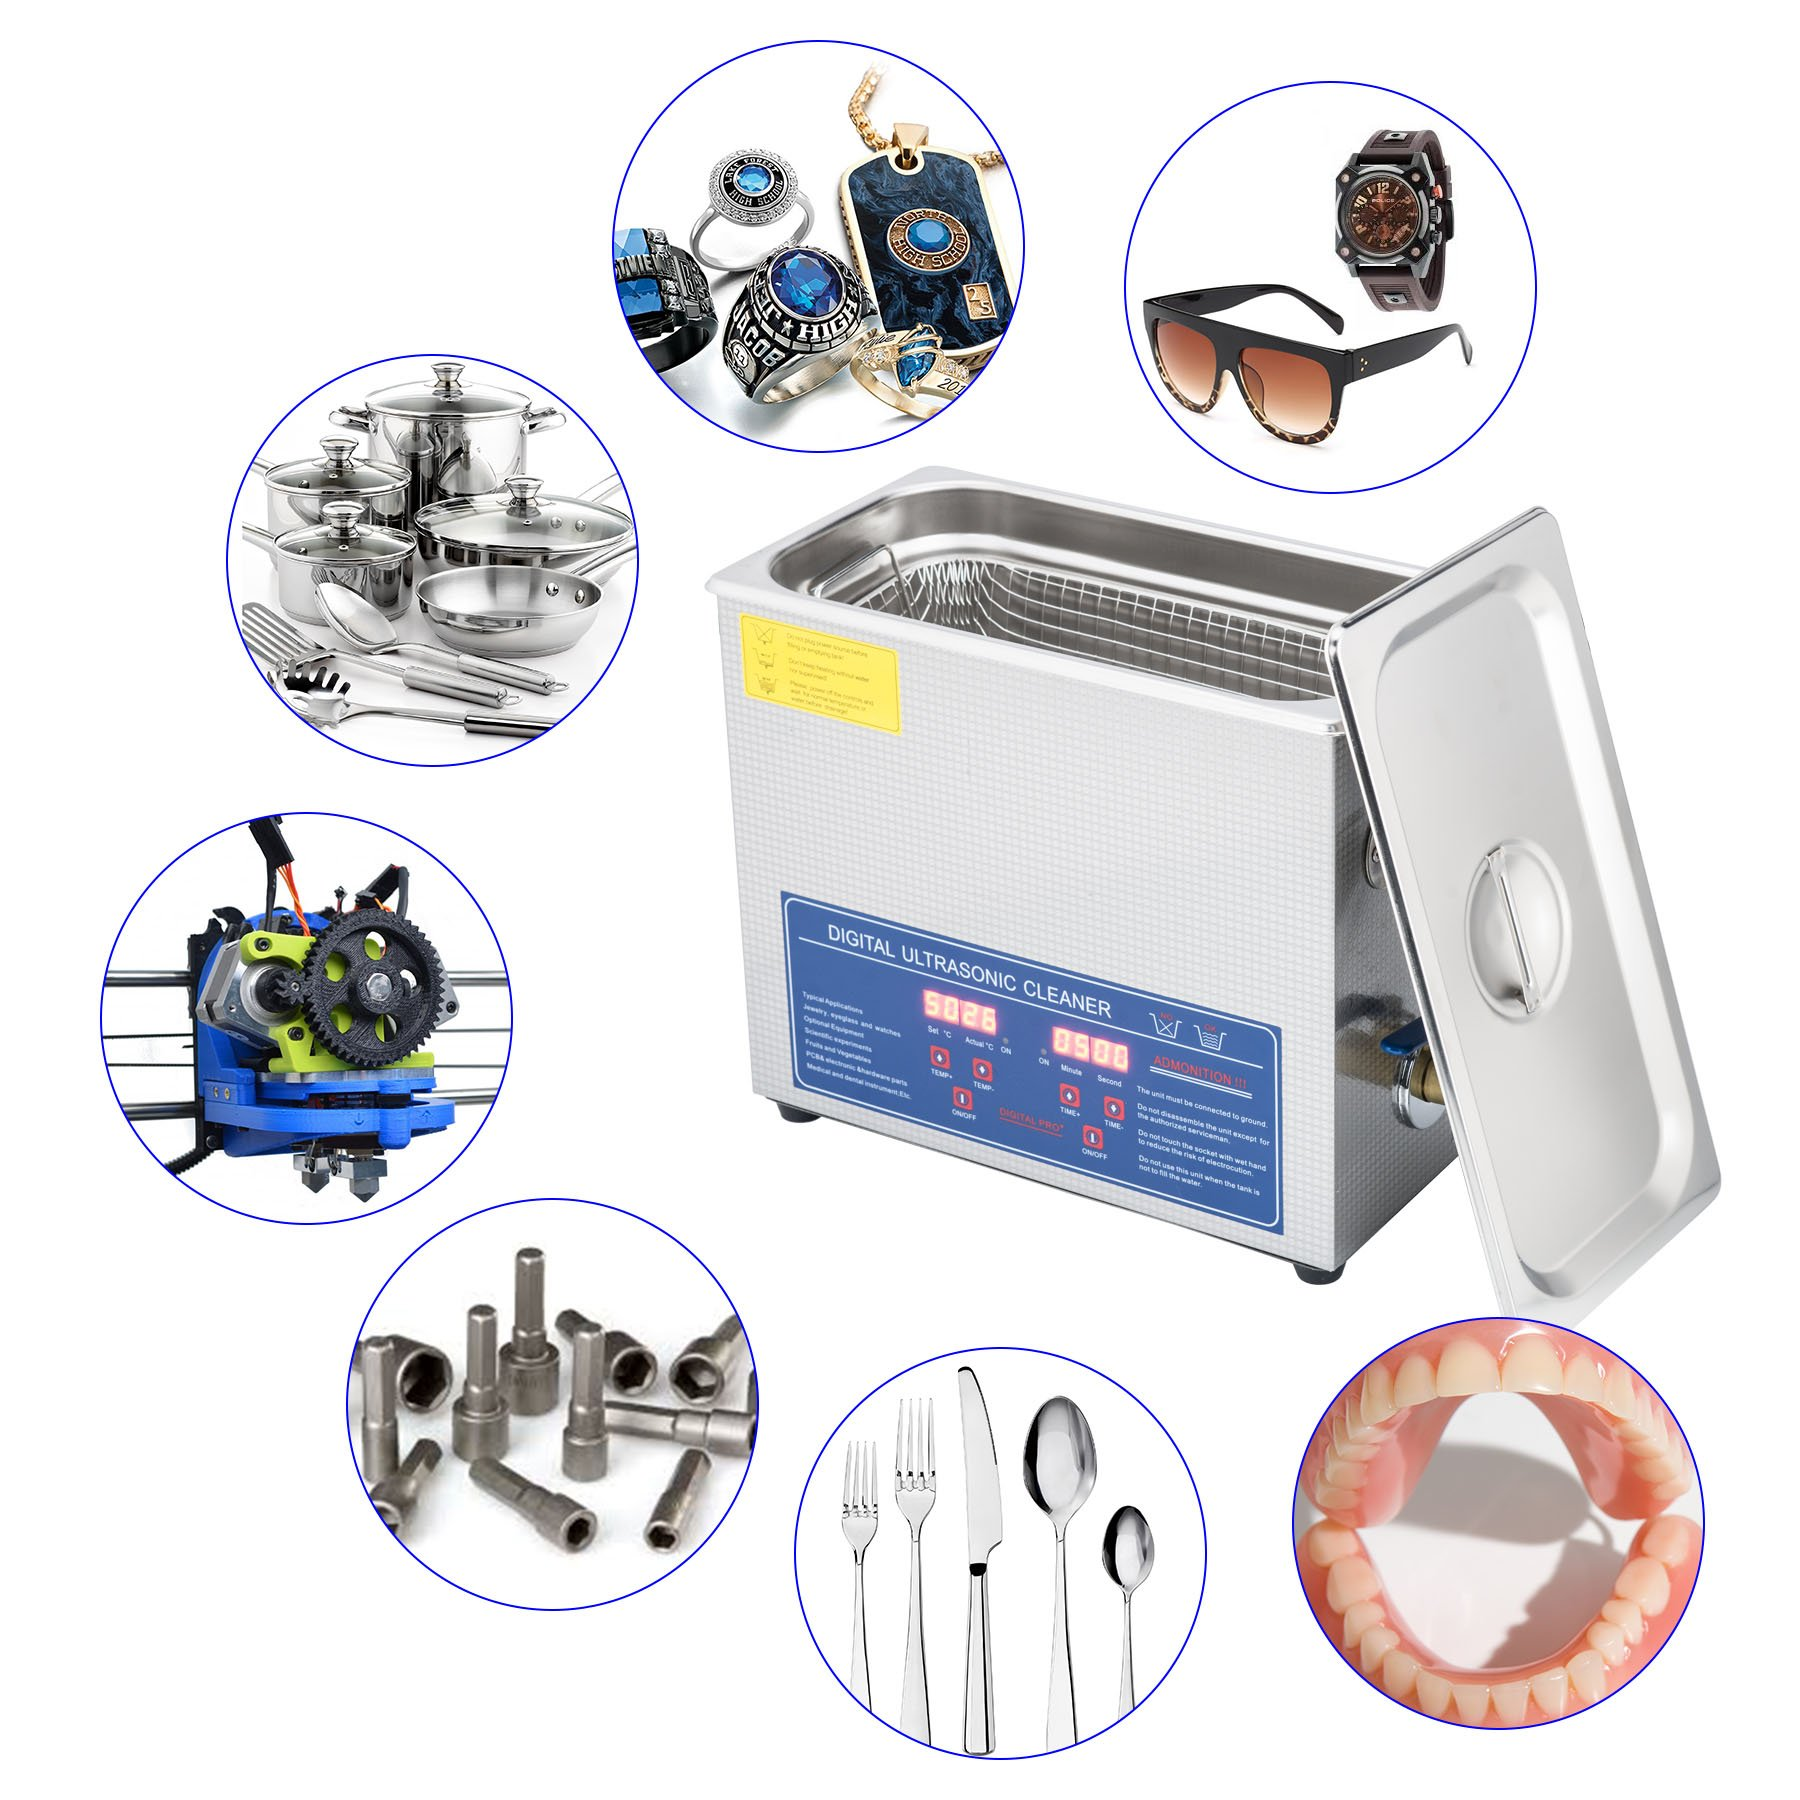 CO-Z 6L Stainless Steel Professional Ultrasonic Jewelry Denture Cleaner with Digital Timer & Heater by CO-Z (Image #5)